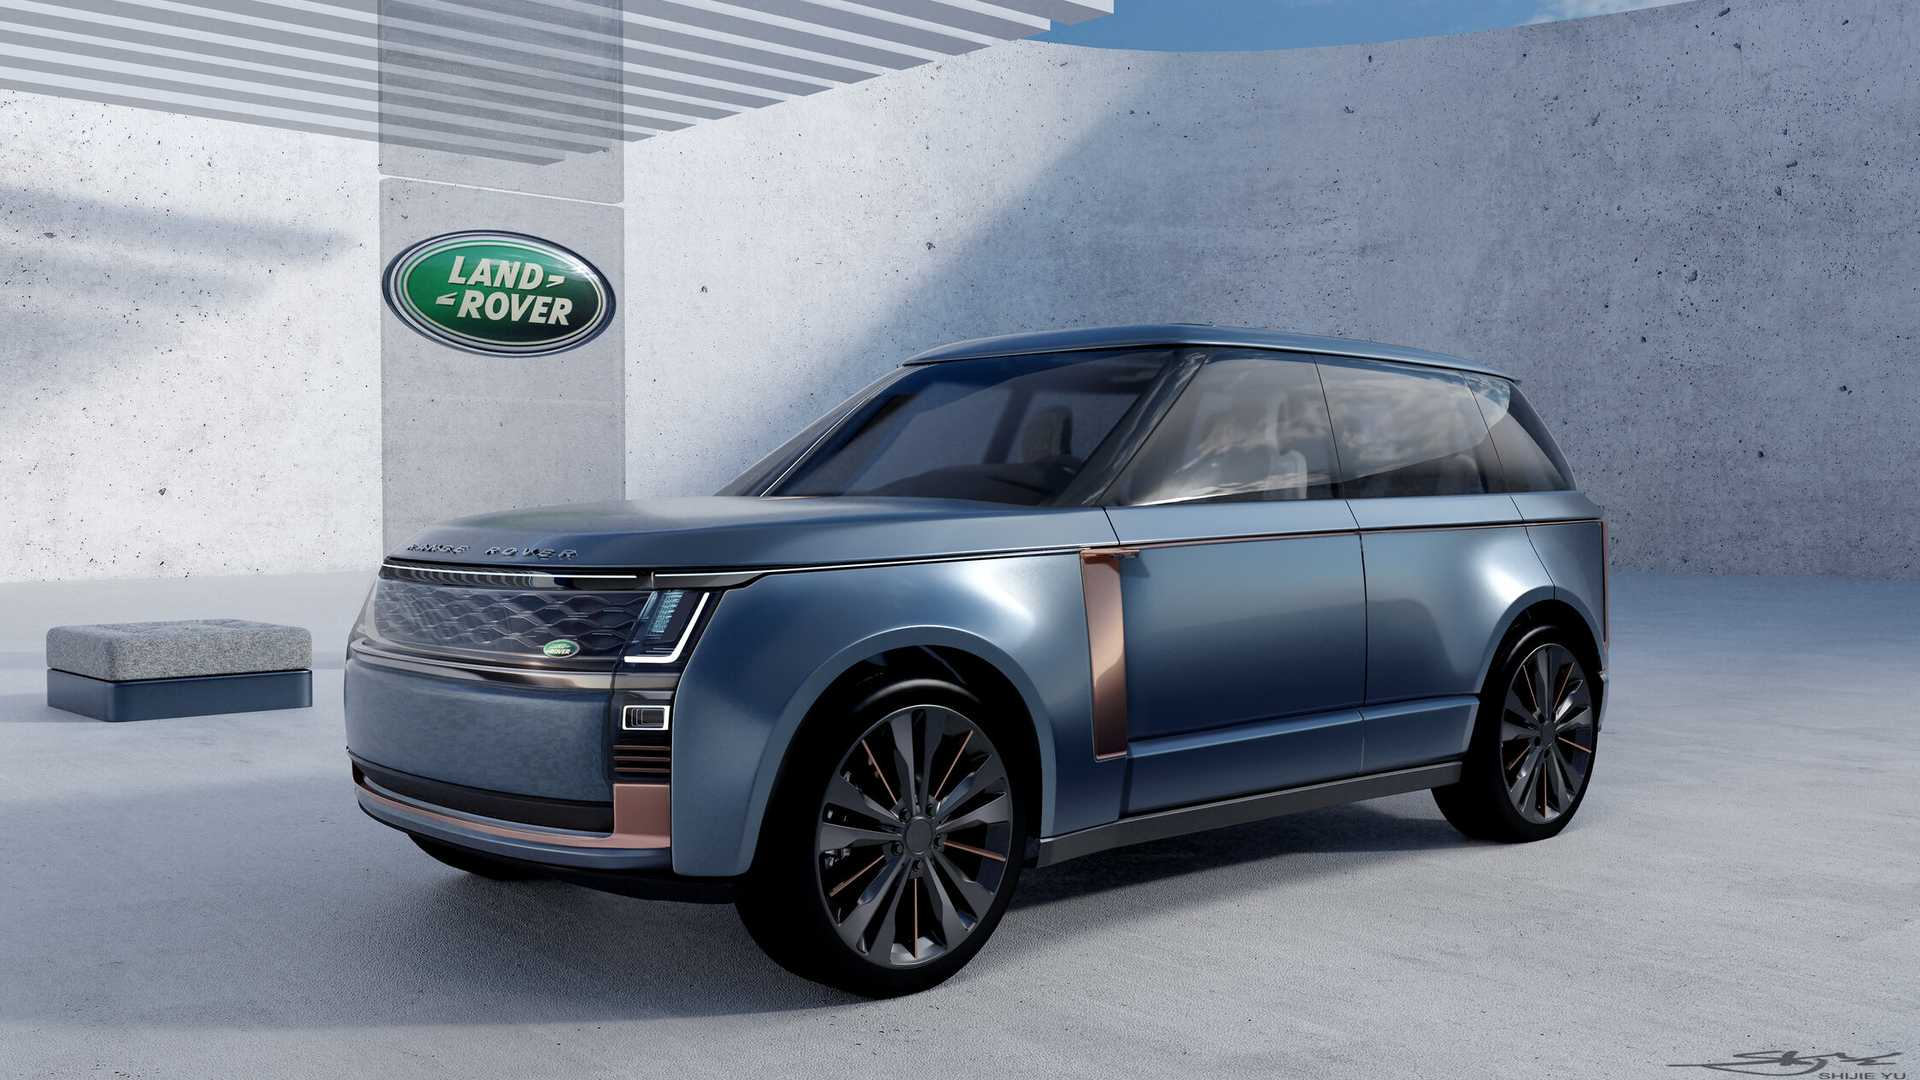 2021 - [Land Rover] Range Rover V - Page 2 Next-gen-land-rover-range-rover-rendering